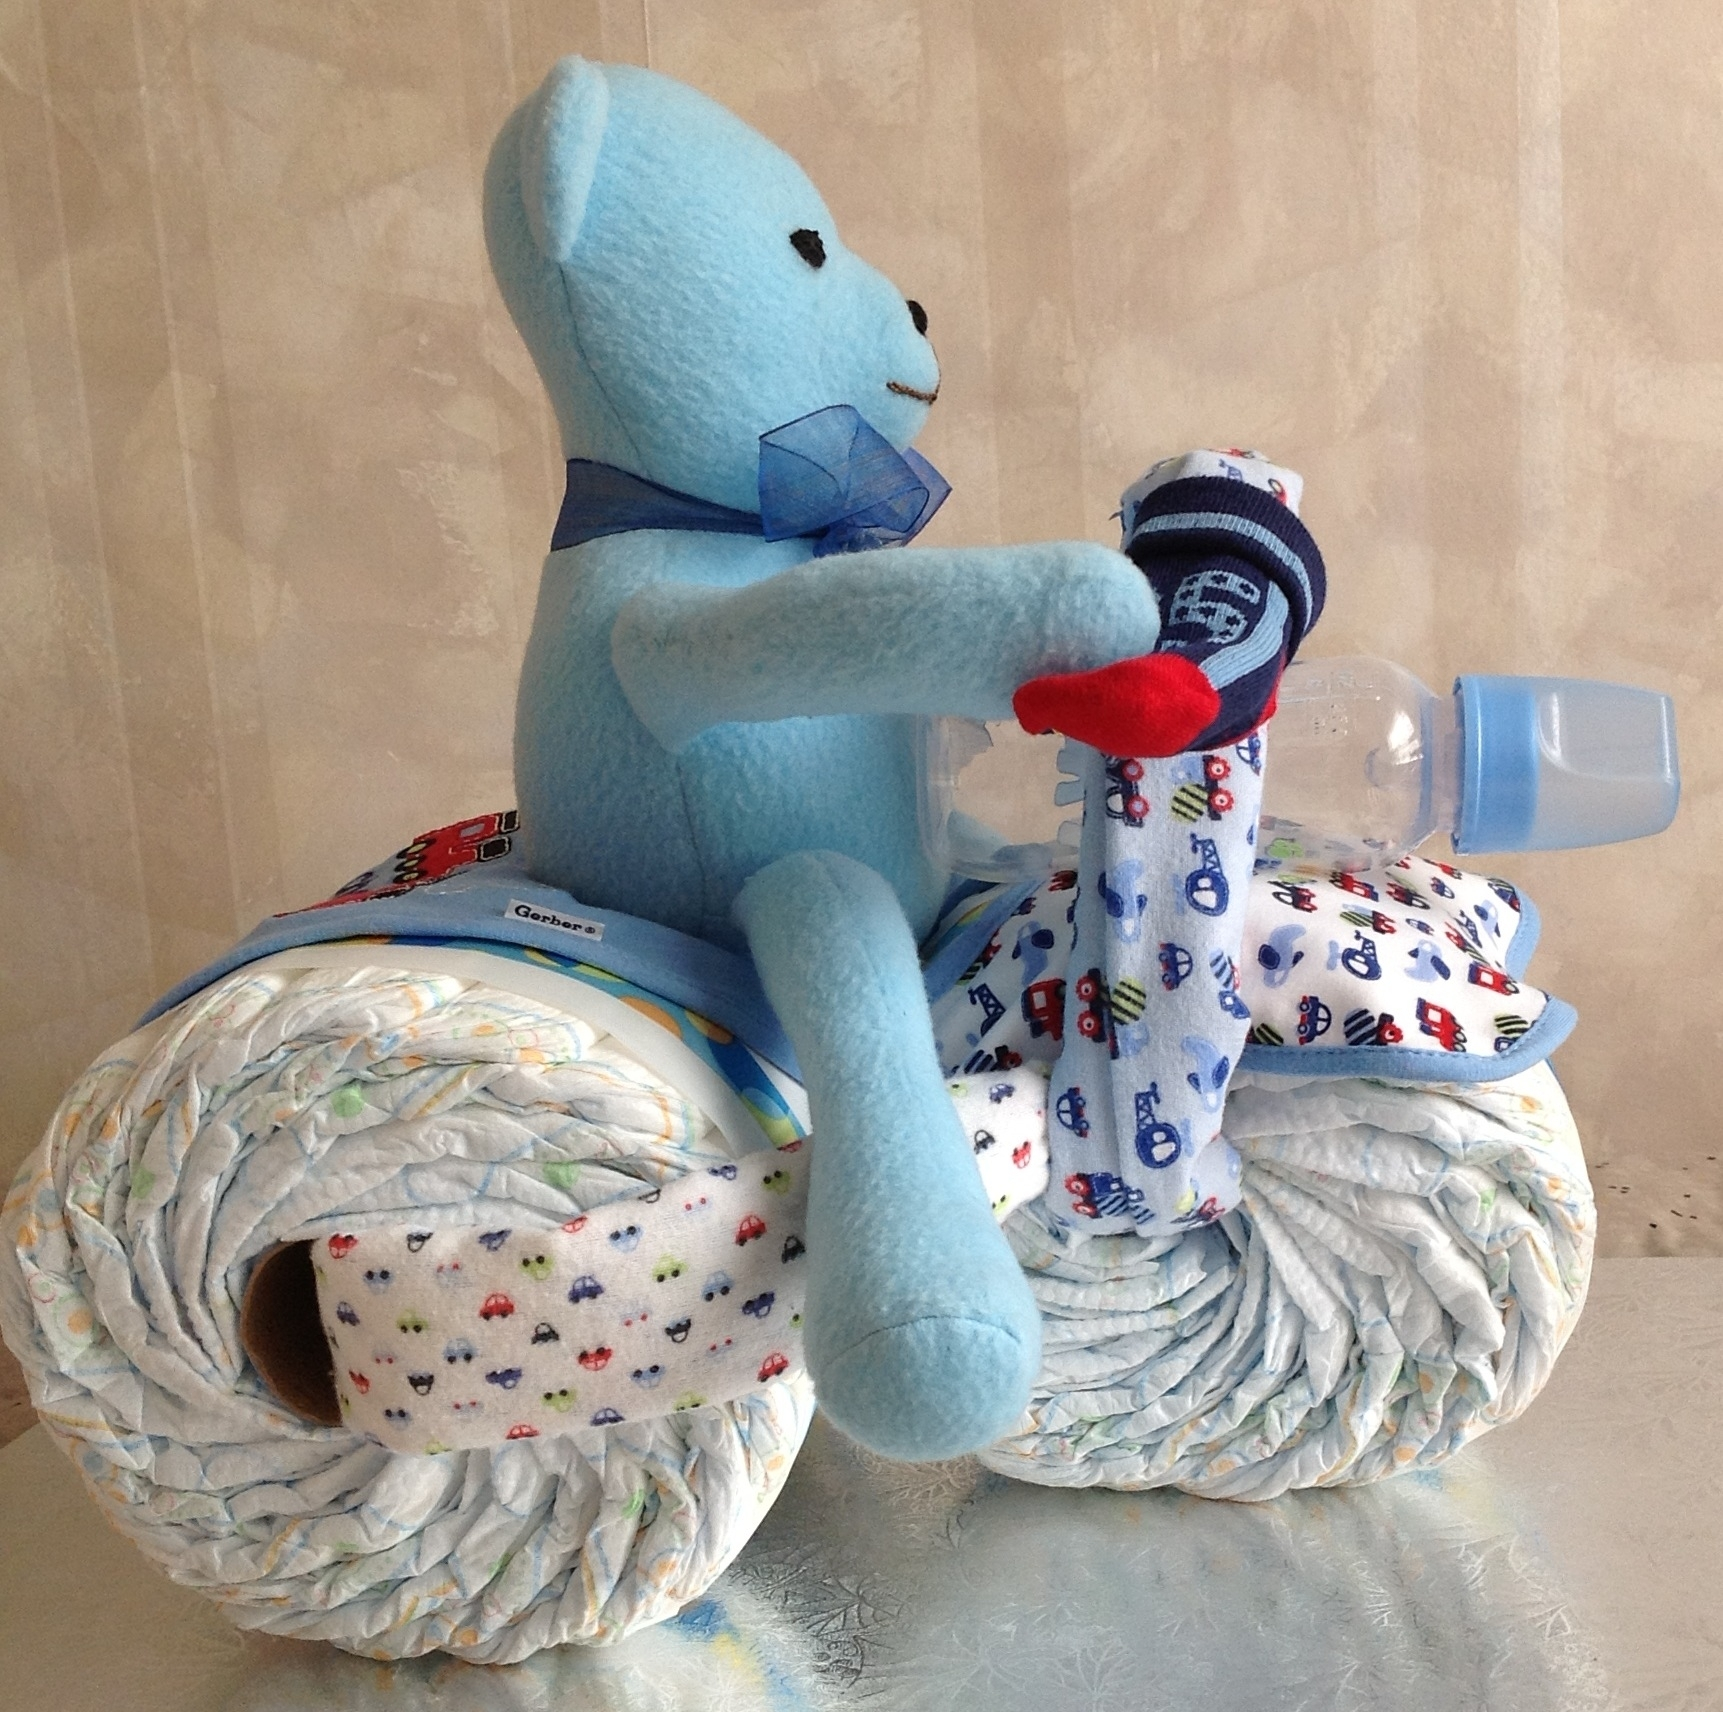 Blue Teddy trycycle right side view